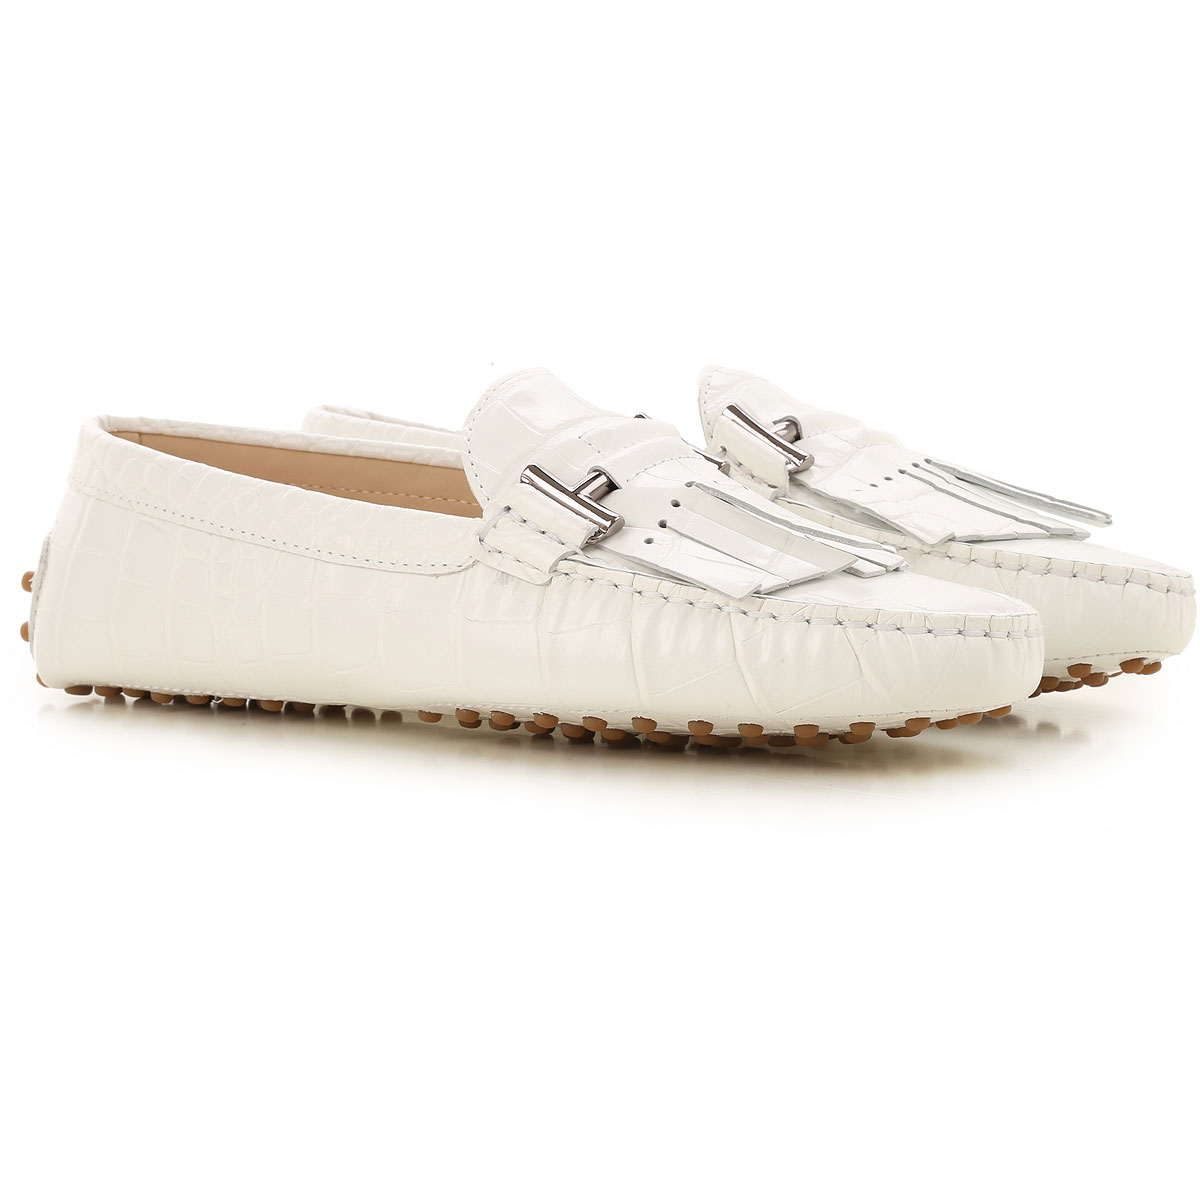 chaussures de sport 1f5a2 87097 Womens Shoes Tods, Style code: xxw00g0bu60wenb001-white-